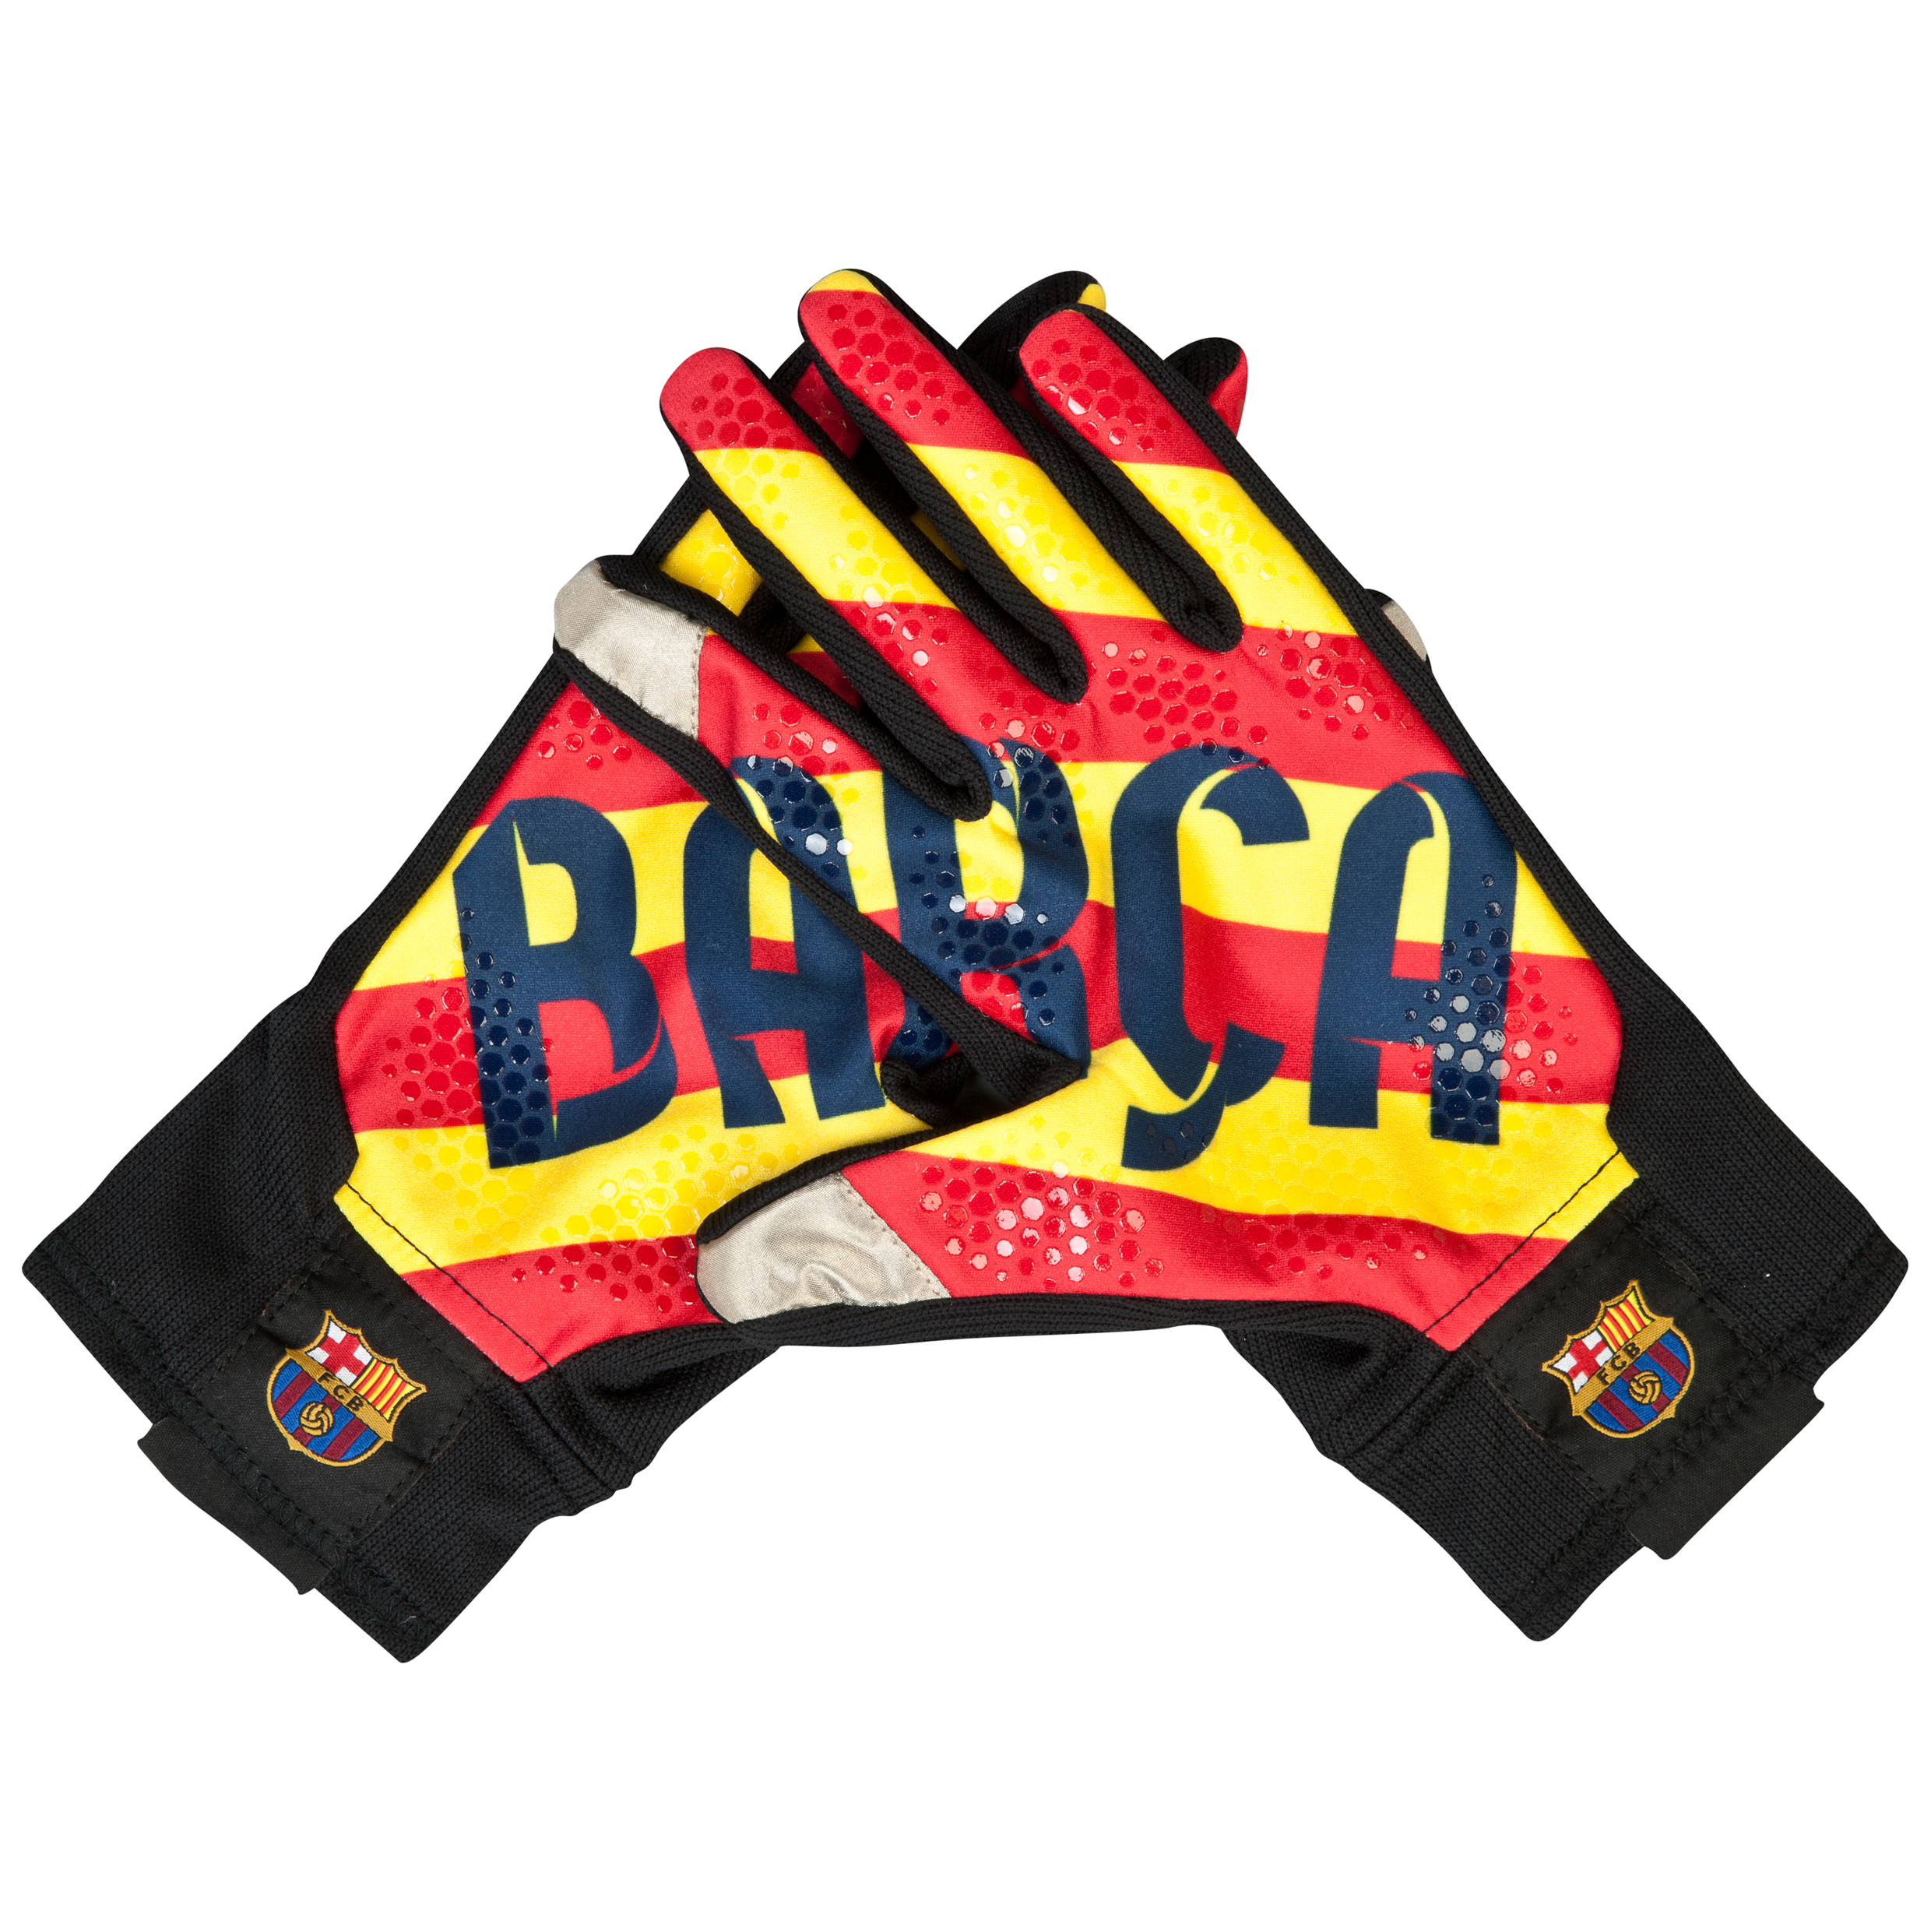 Barcelona Fan Glove - Black/Red/Yellow Black